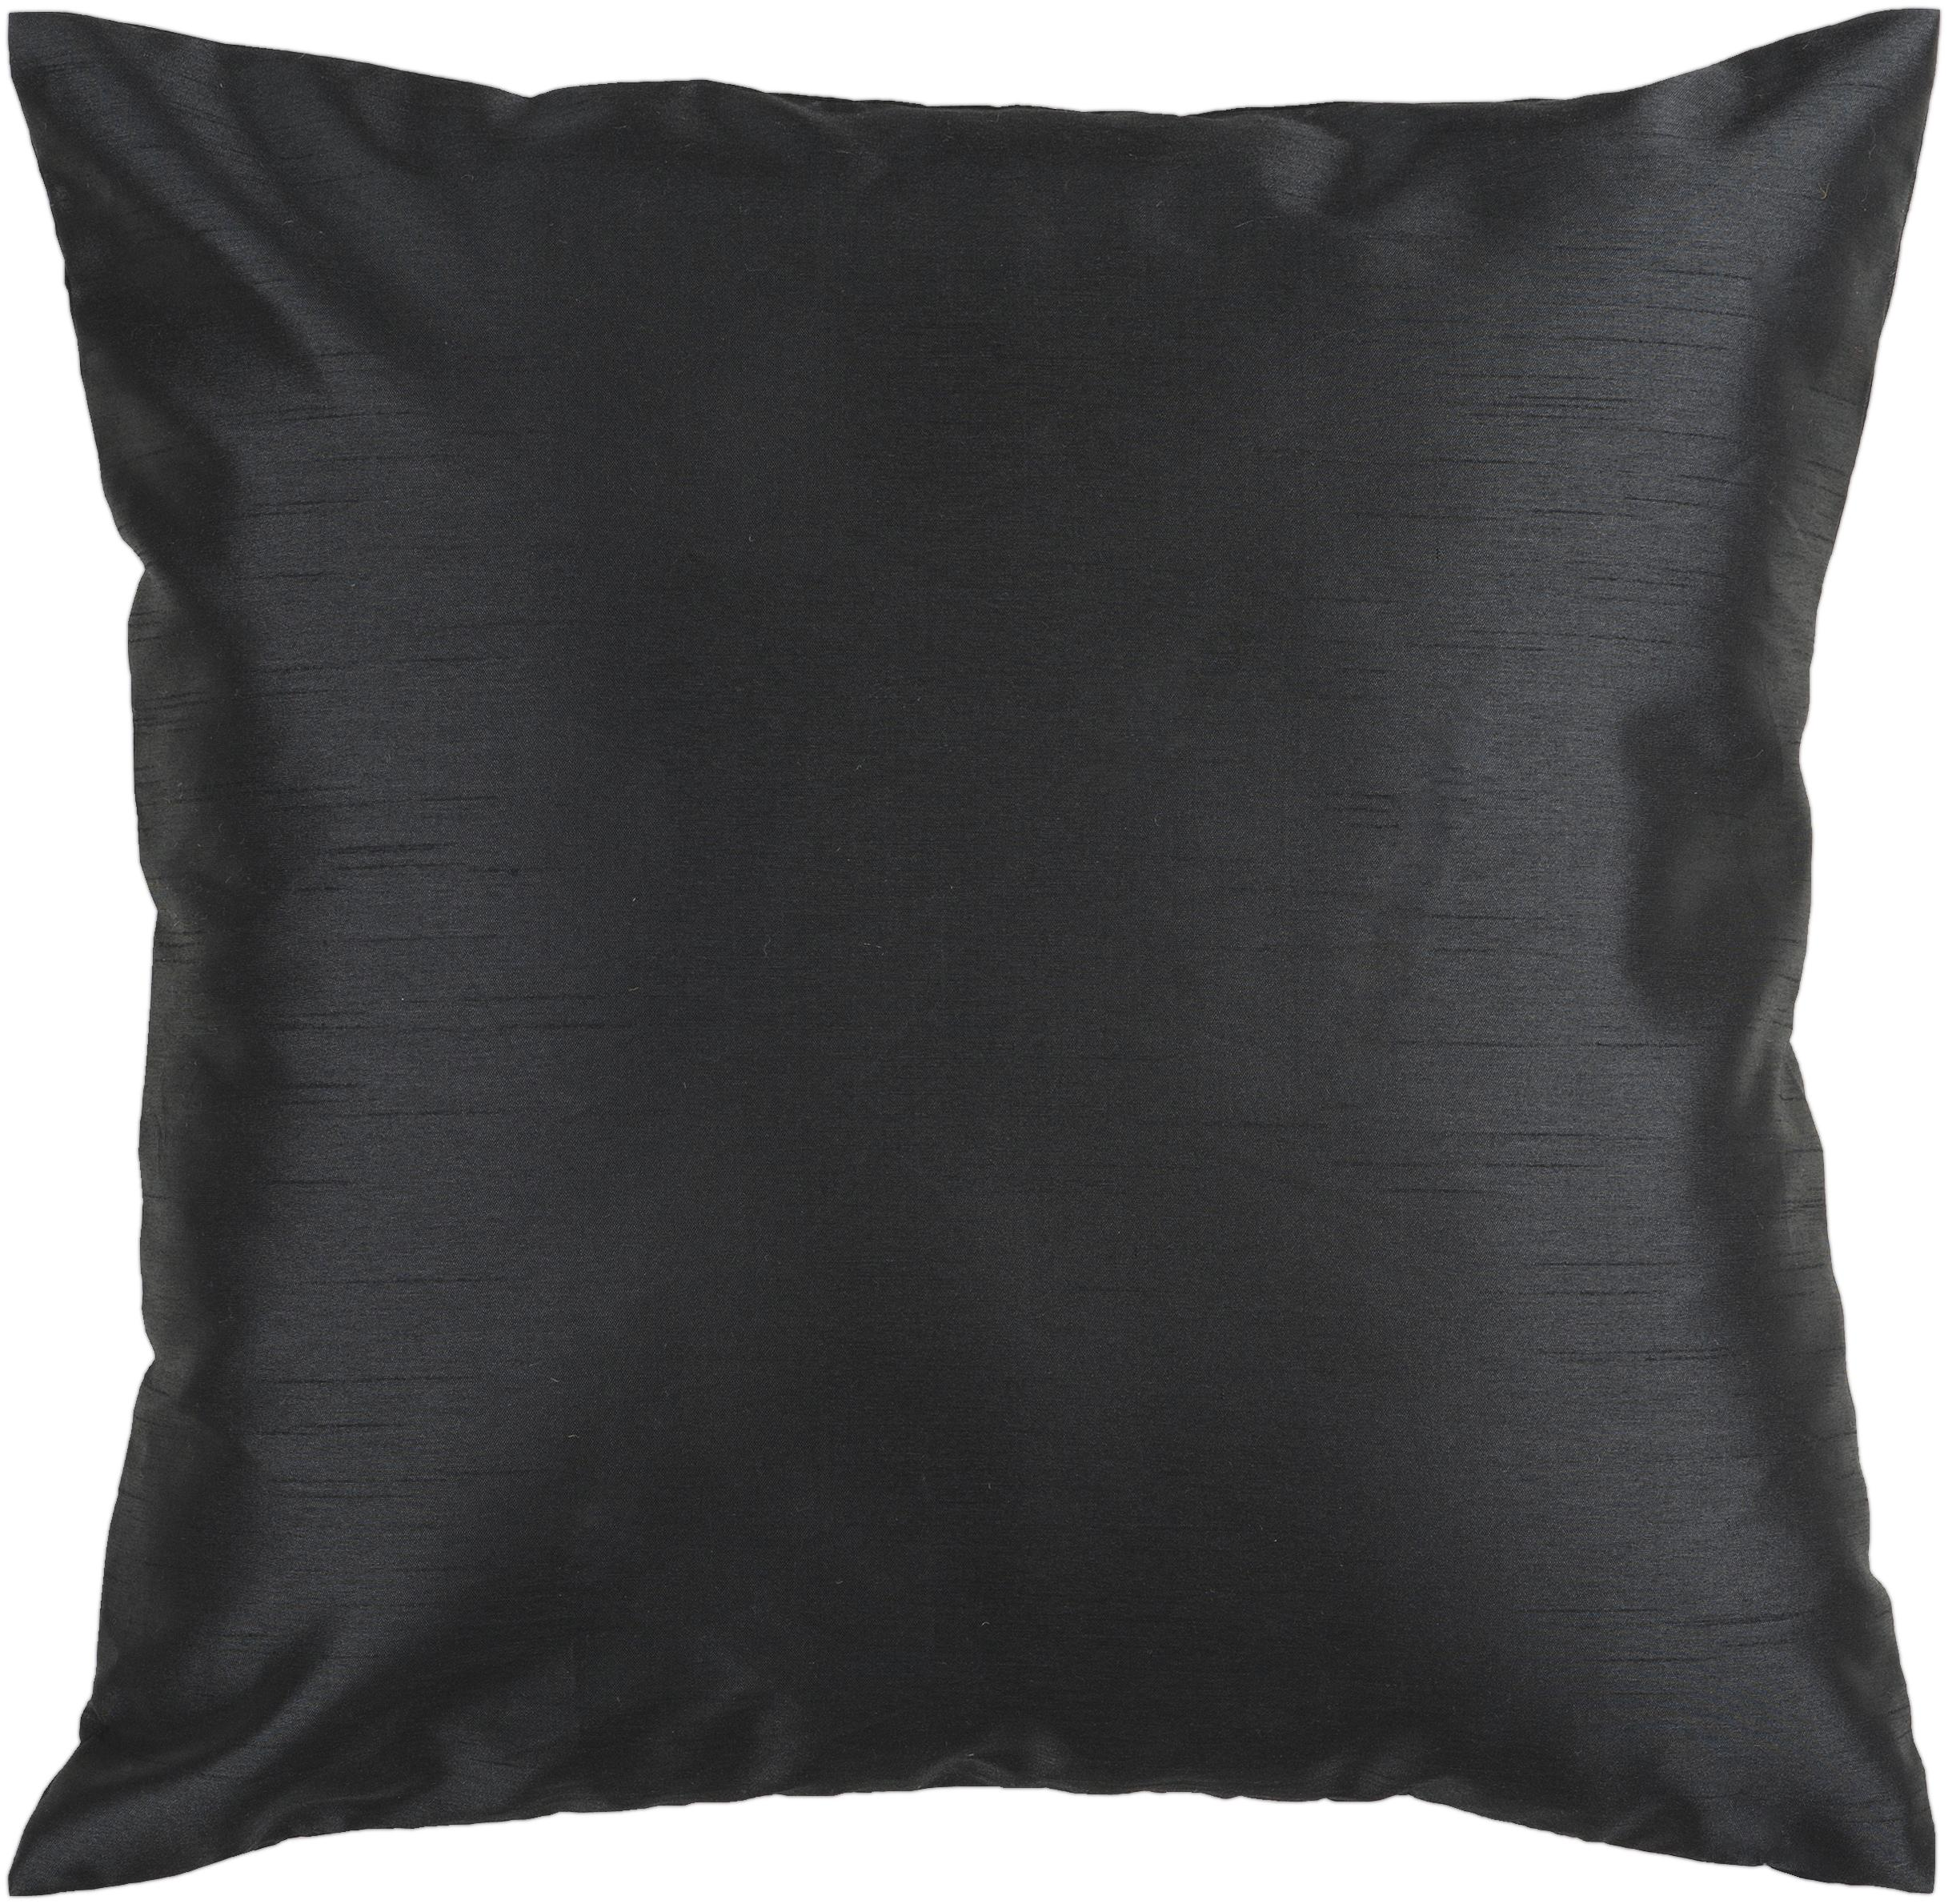 "Surya Rugs Pillows 18"" x 18"" Pillow - Item Number: HH037-1818P"